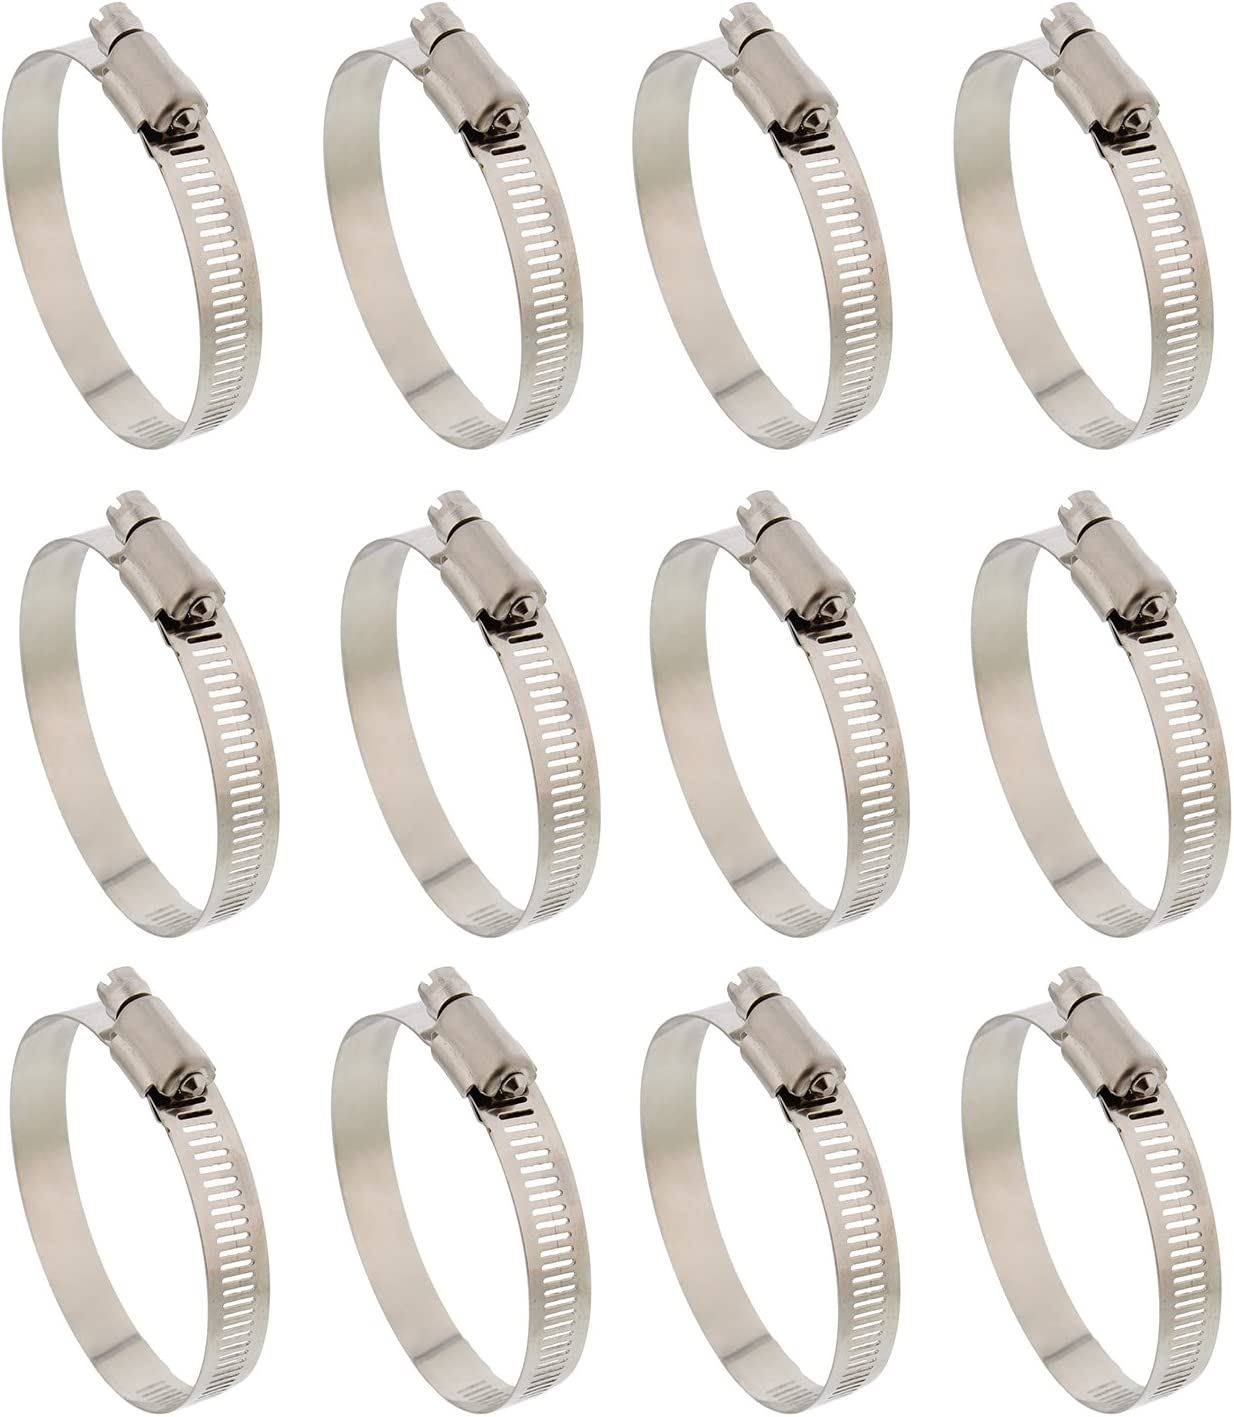 ABN Hose Clamp 12-Pack, 7/8in, Zinc Plated, 13-23mm Range – for Plumbing, Automotive, and Mechanical Applications